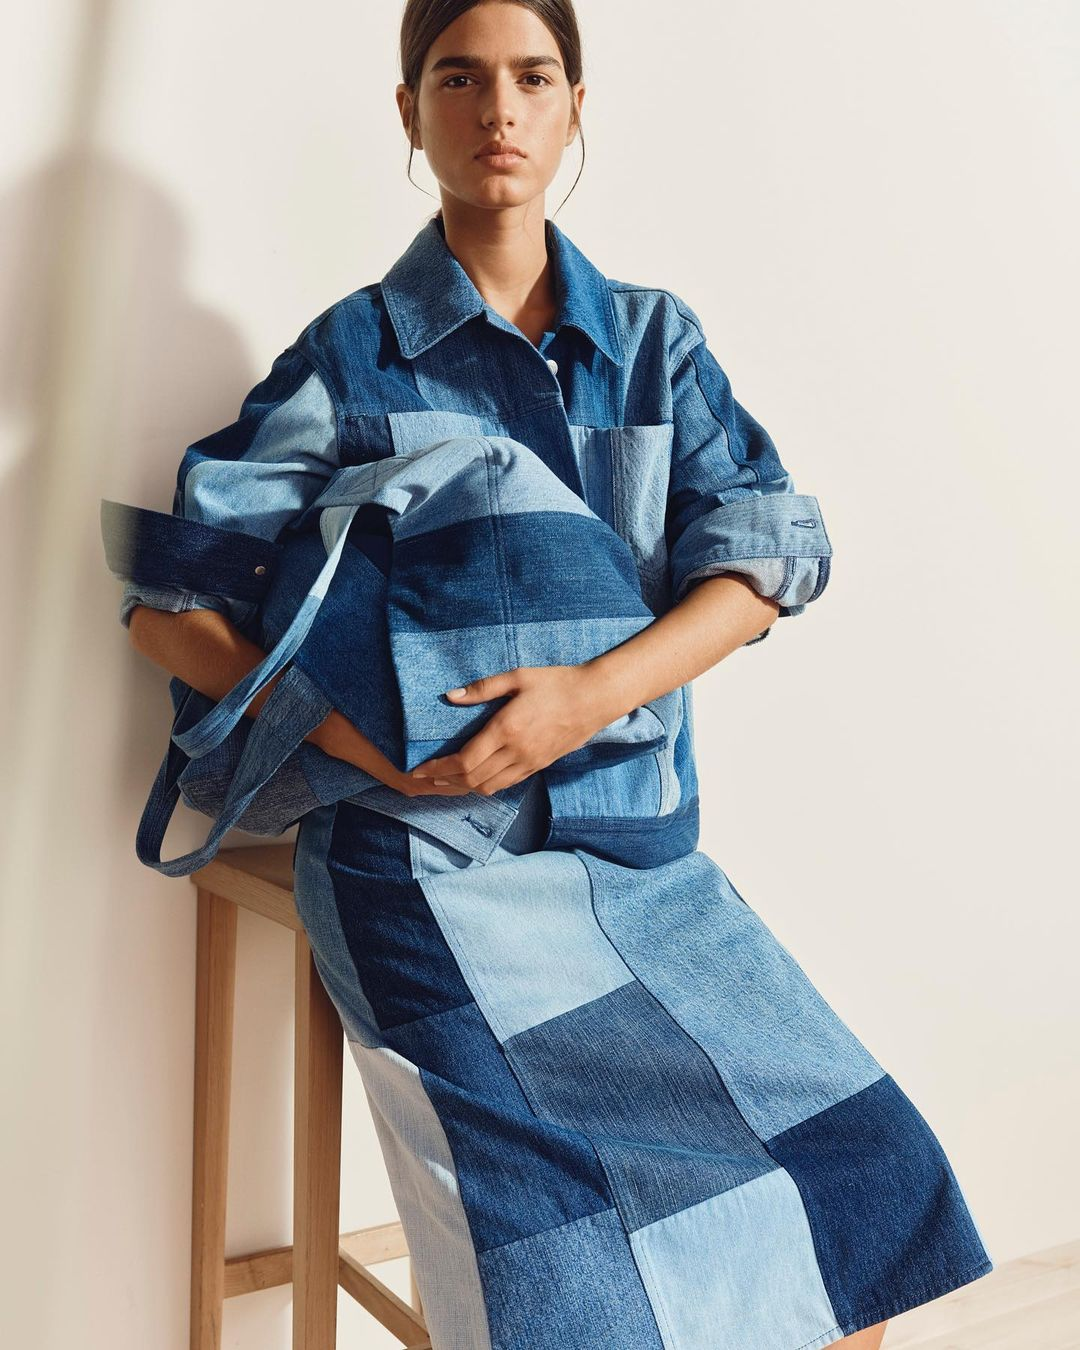 Here's your first look at Arket's sustainable Patchwork Denim collection